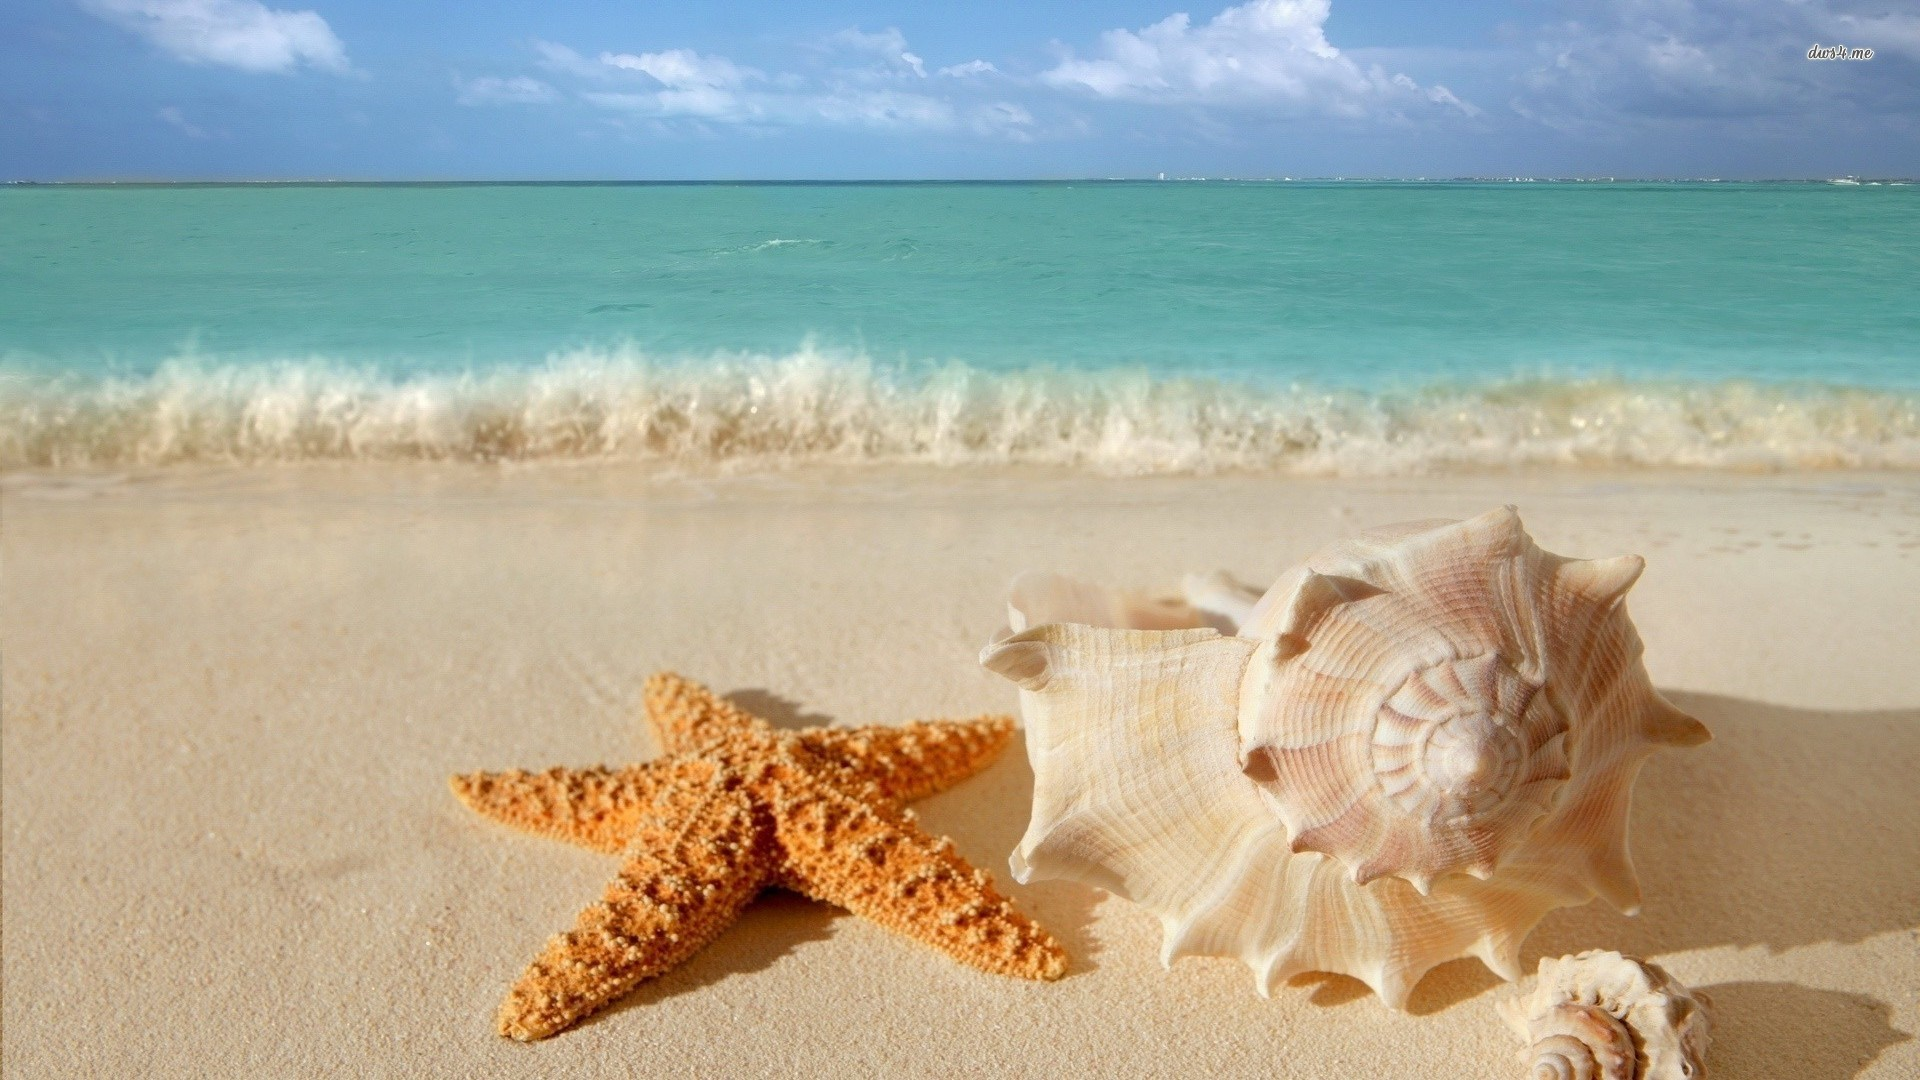 1920x1080 Waves starfish seashells depth of field sea wallpaper. Fresh HD wallpapers  for your desktop.